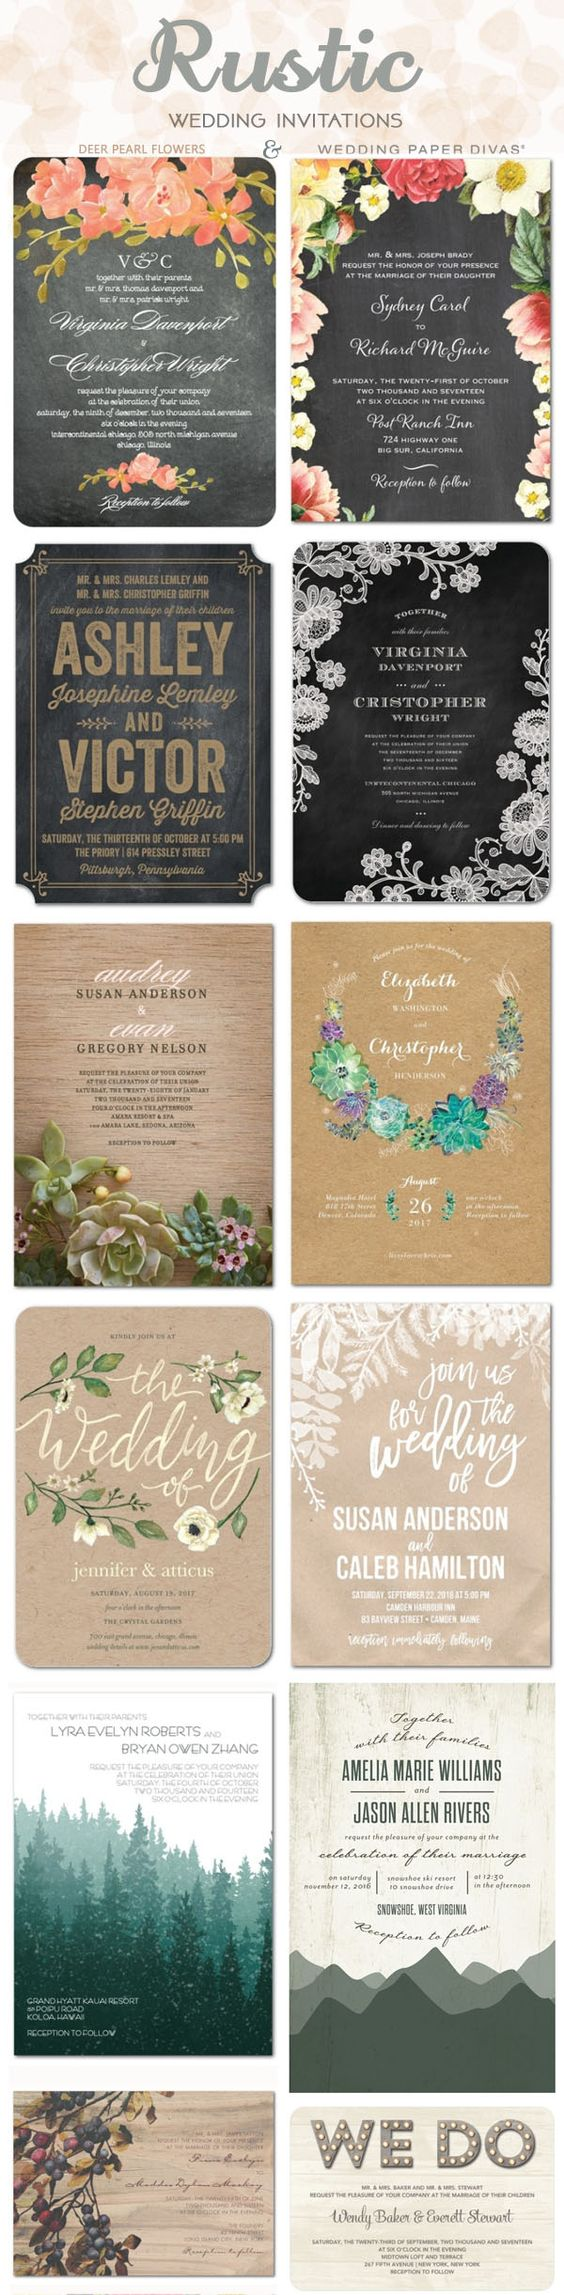 tps_header wedding paper divas promo code updated weekly 8 free wedding paper divas samples never end save on save the dates ends on save on